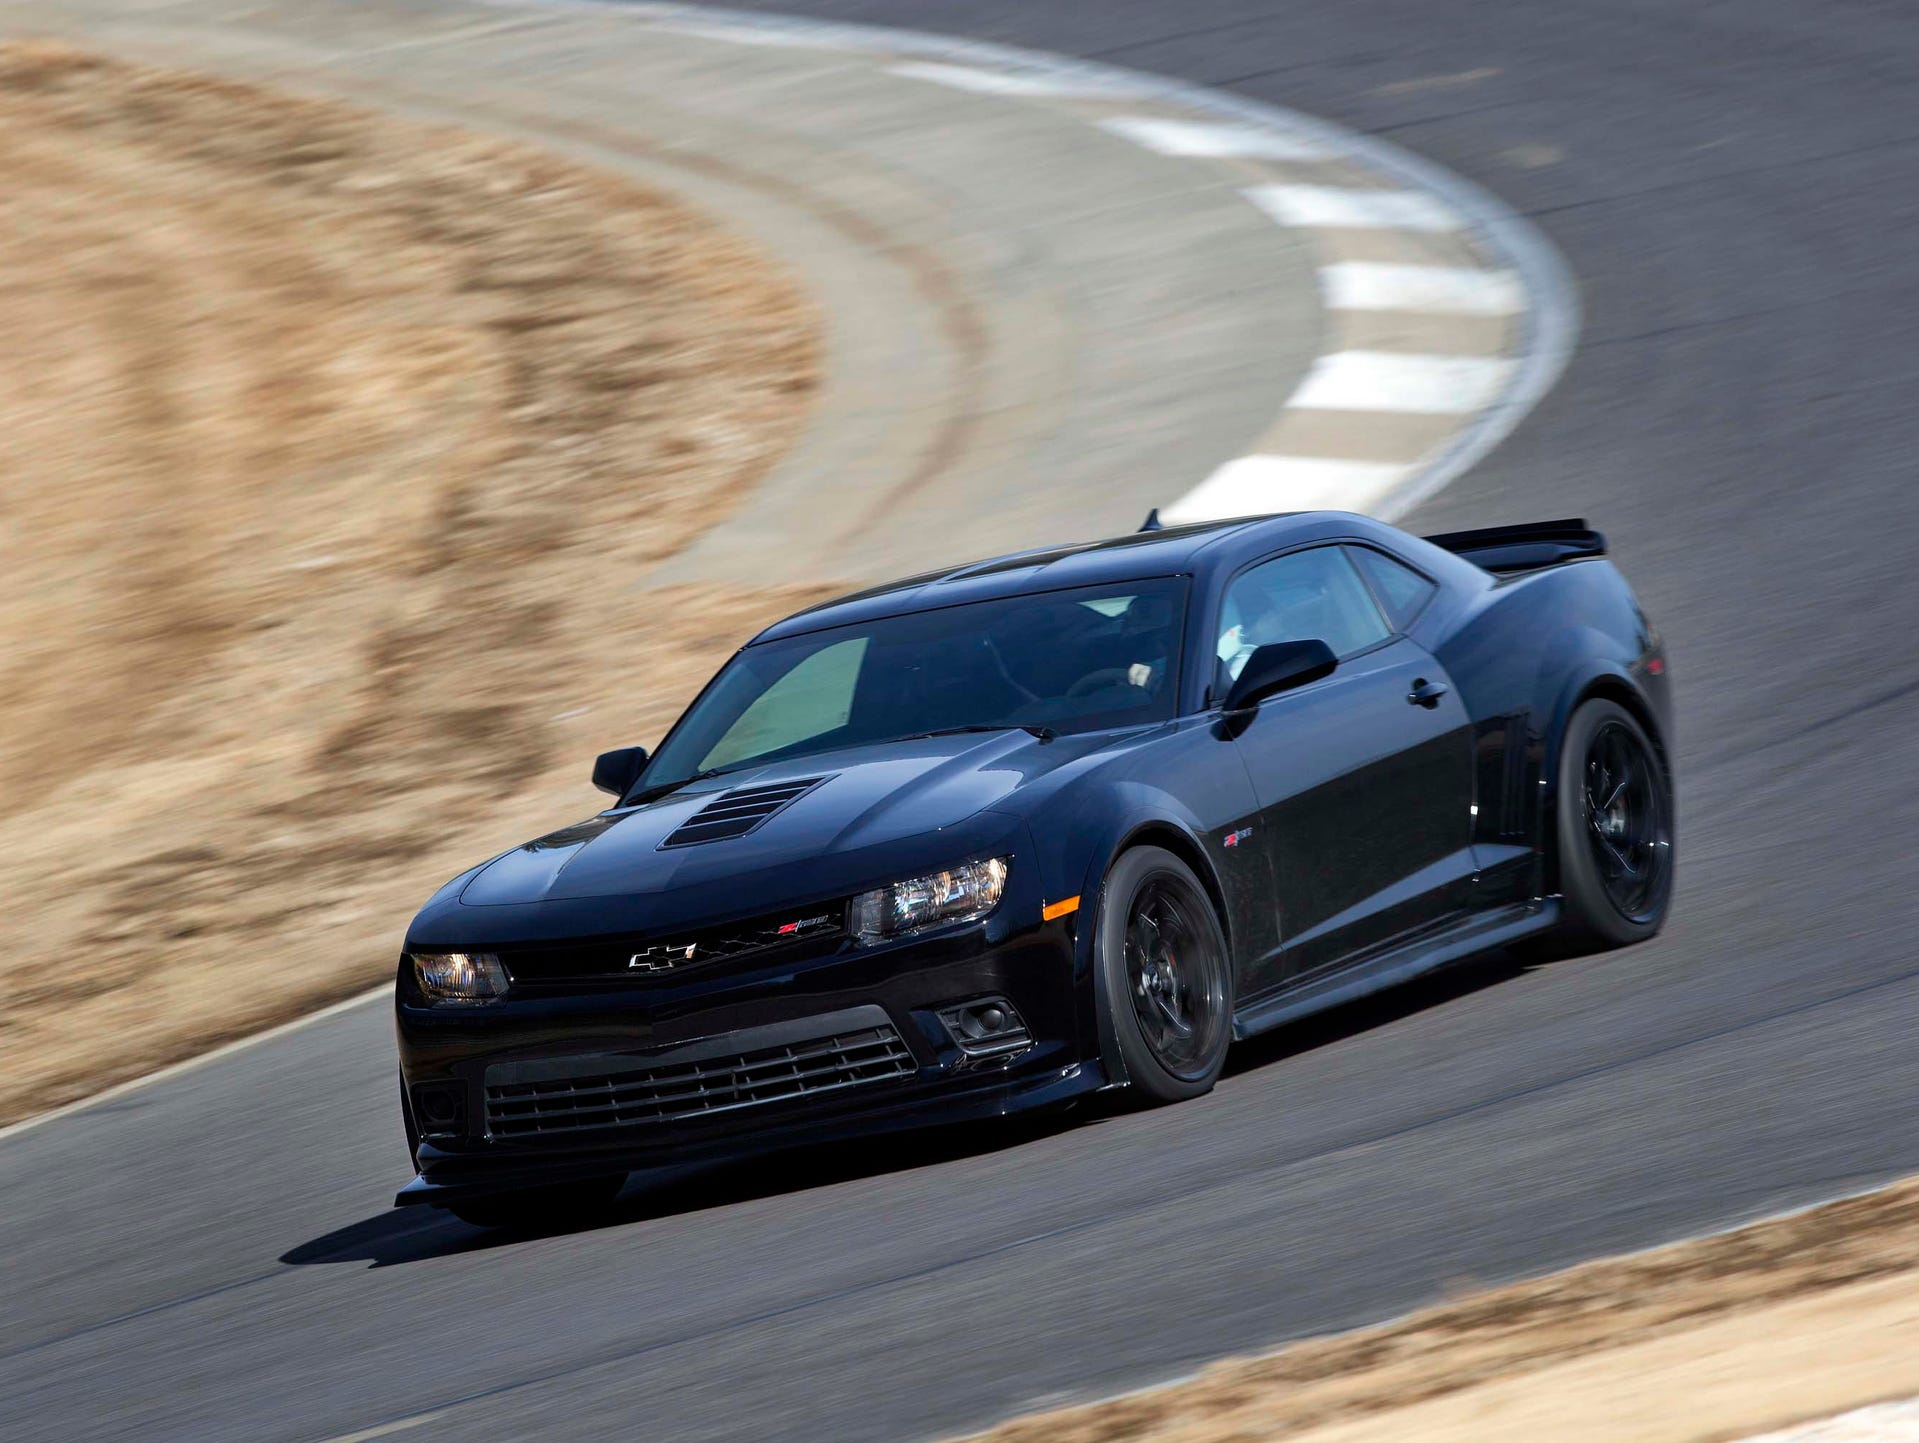 2014: Camaro received significant cosmetic changes,